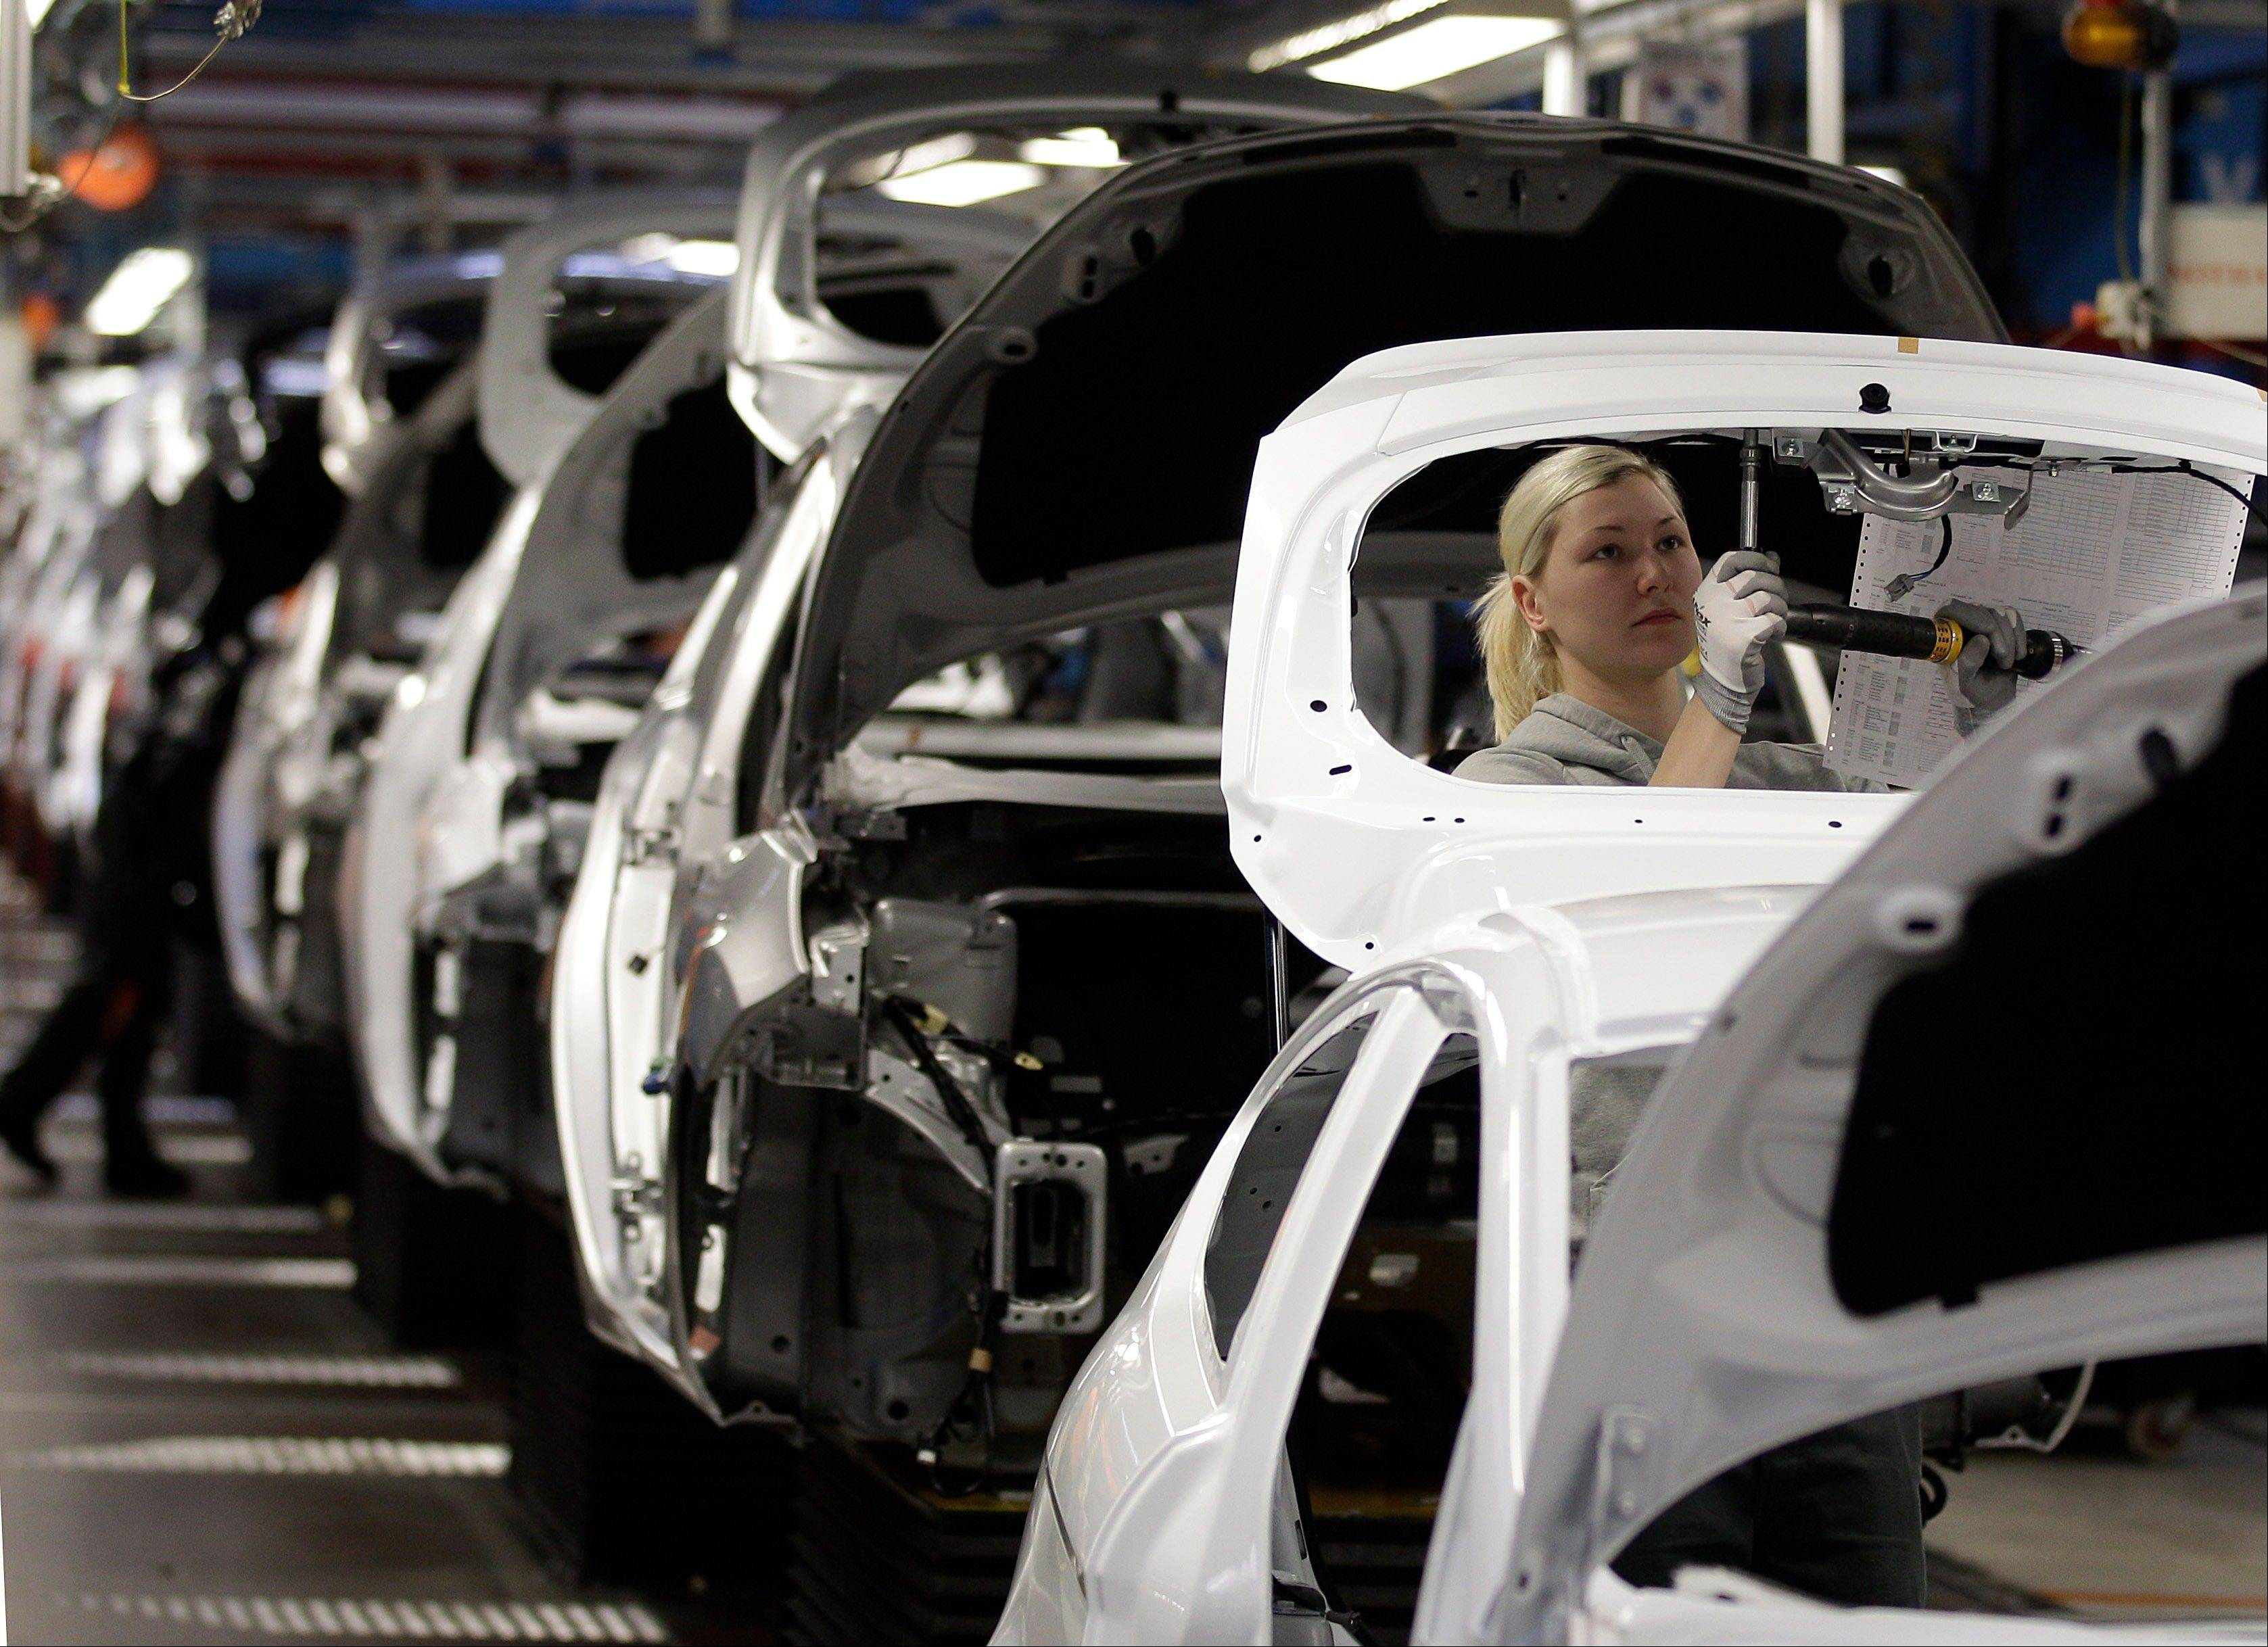 Workers build Ford Fiesta�s at a Ford factory in Cologne, Germany. Germany�s economy, Europe�s largest, grew a larger-than-expected 0.3 per cent in the second quarter as consumer spending and strong exports helped stave off effects of the eurozone debt crisis, the Federal Statistical Office said Tuesday.